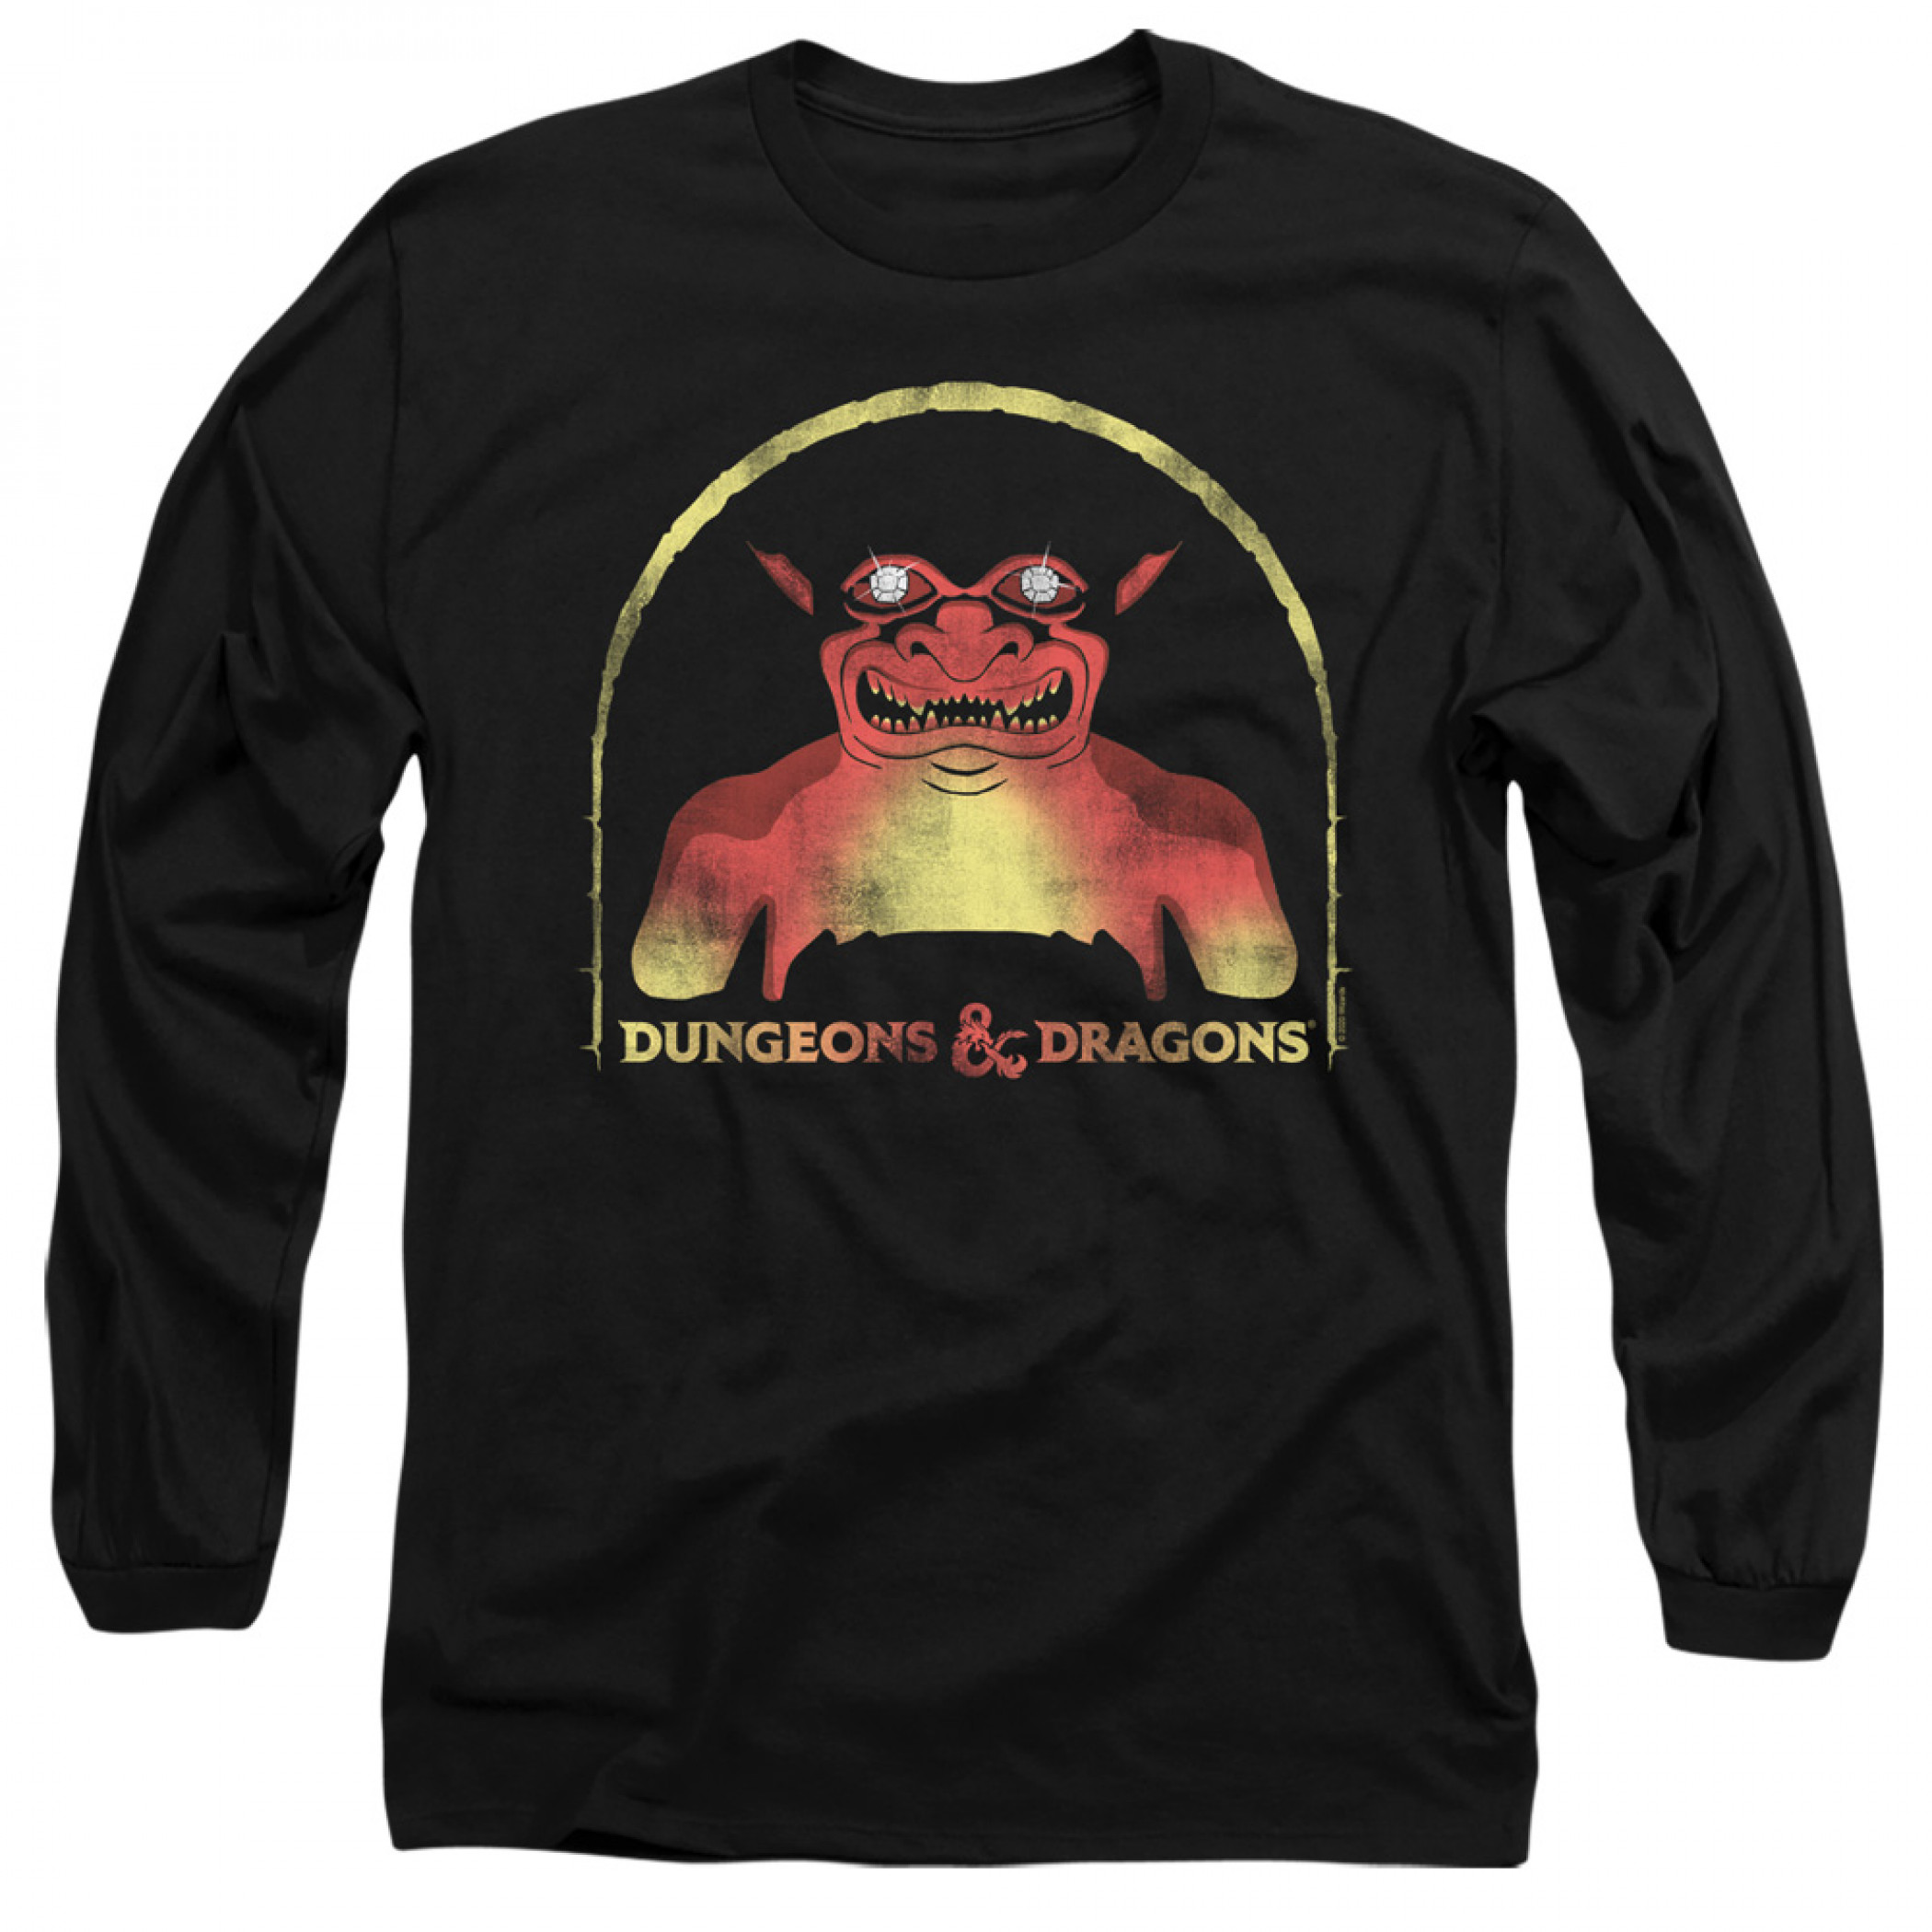 Dungeons & Dragons Old School Long Sleeve Shirt